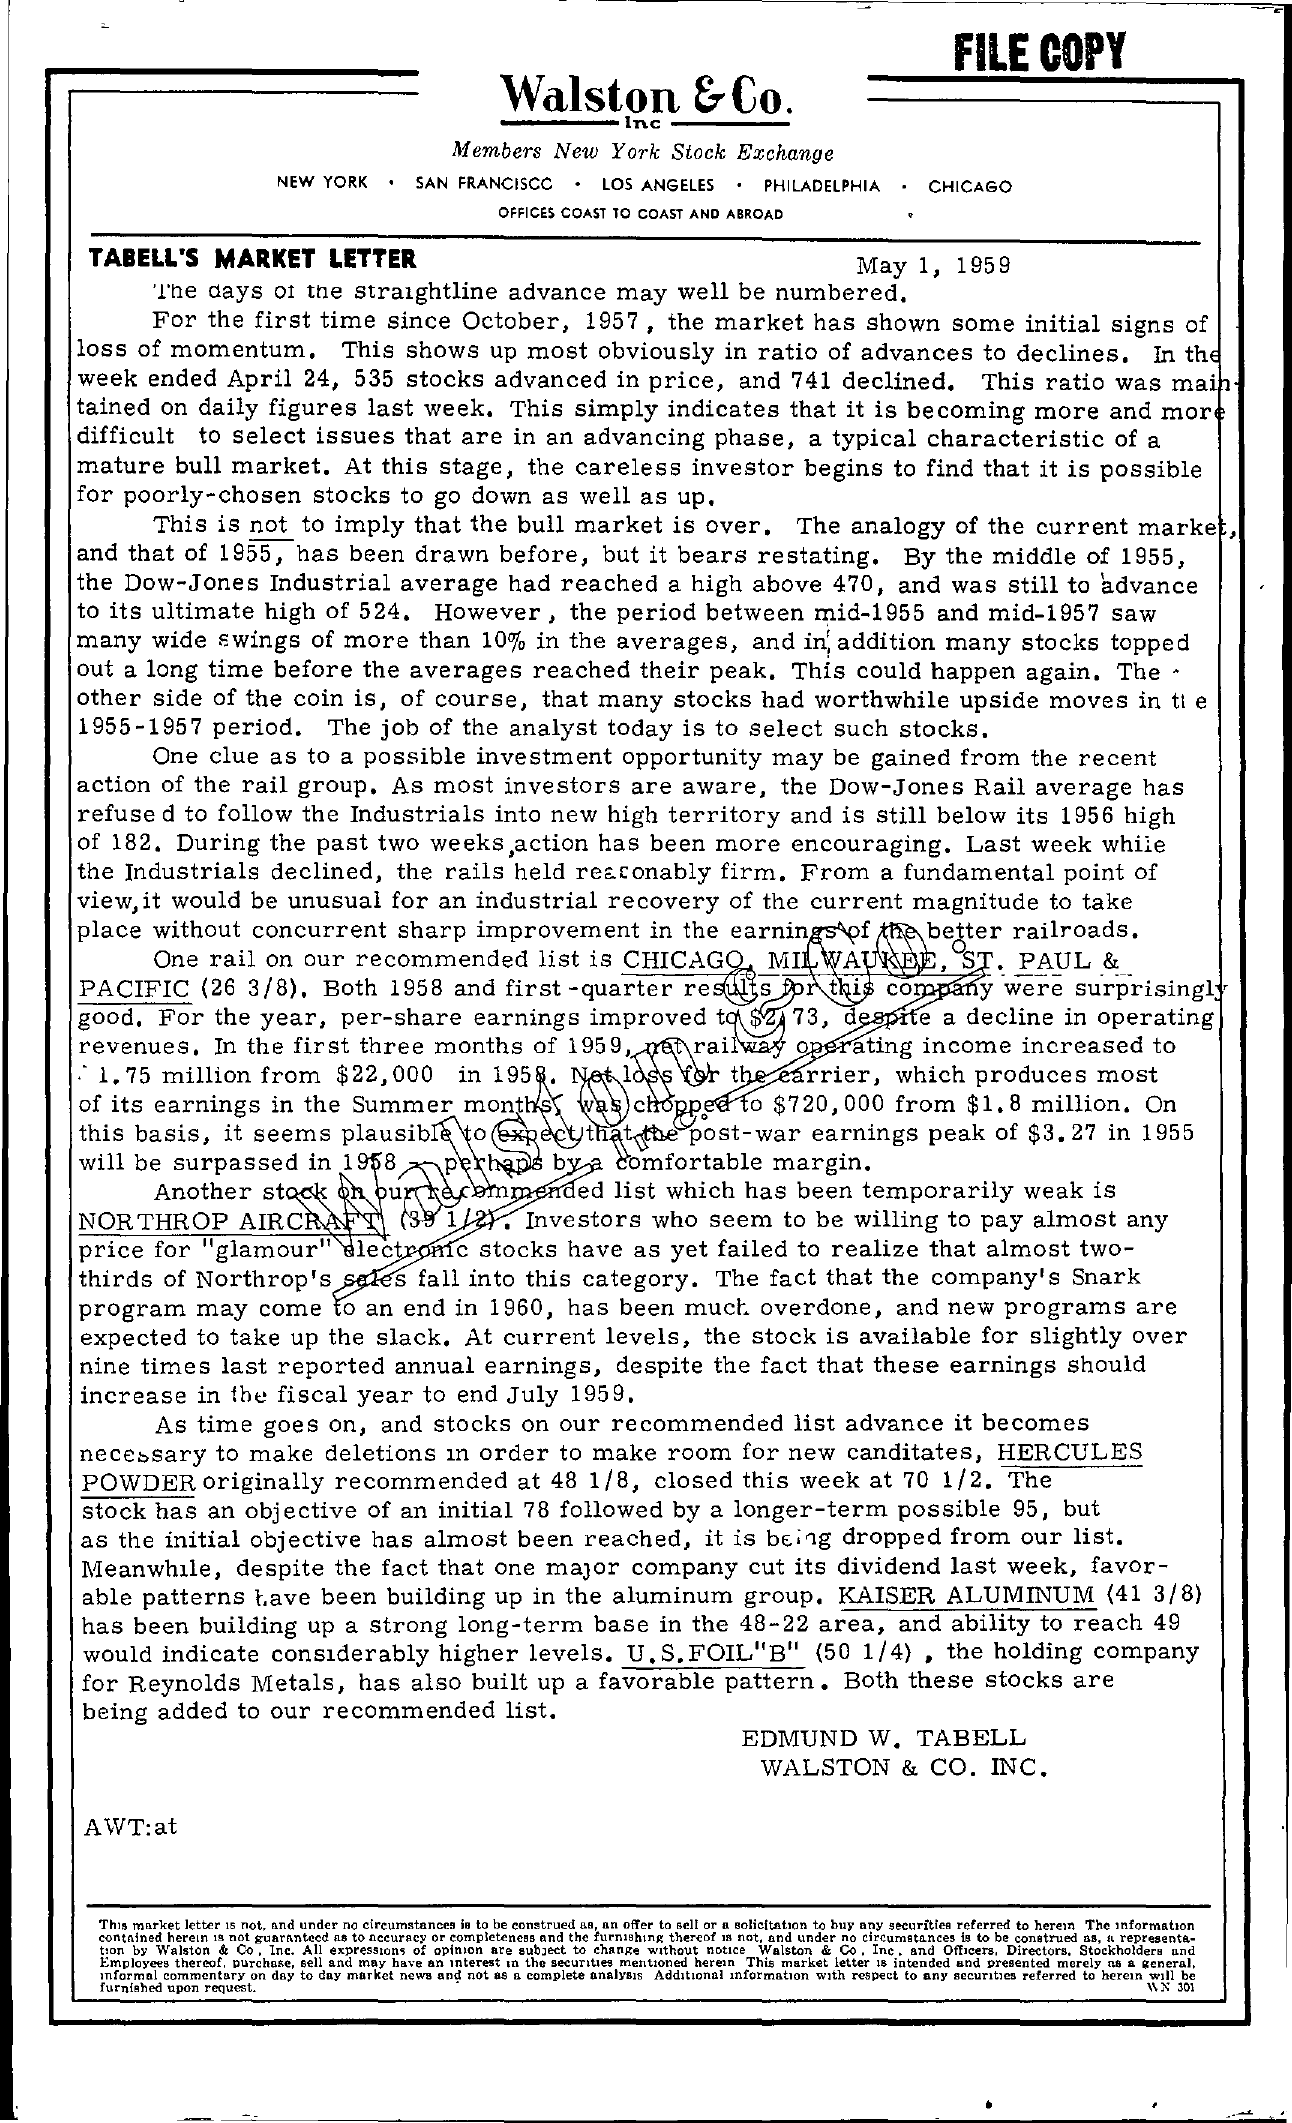 Tabell's Market Letter - May 01, 1959